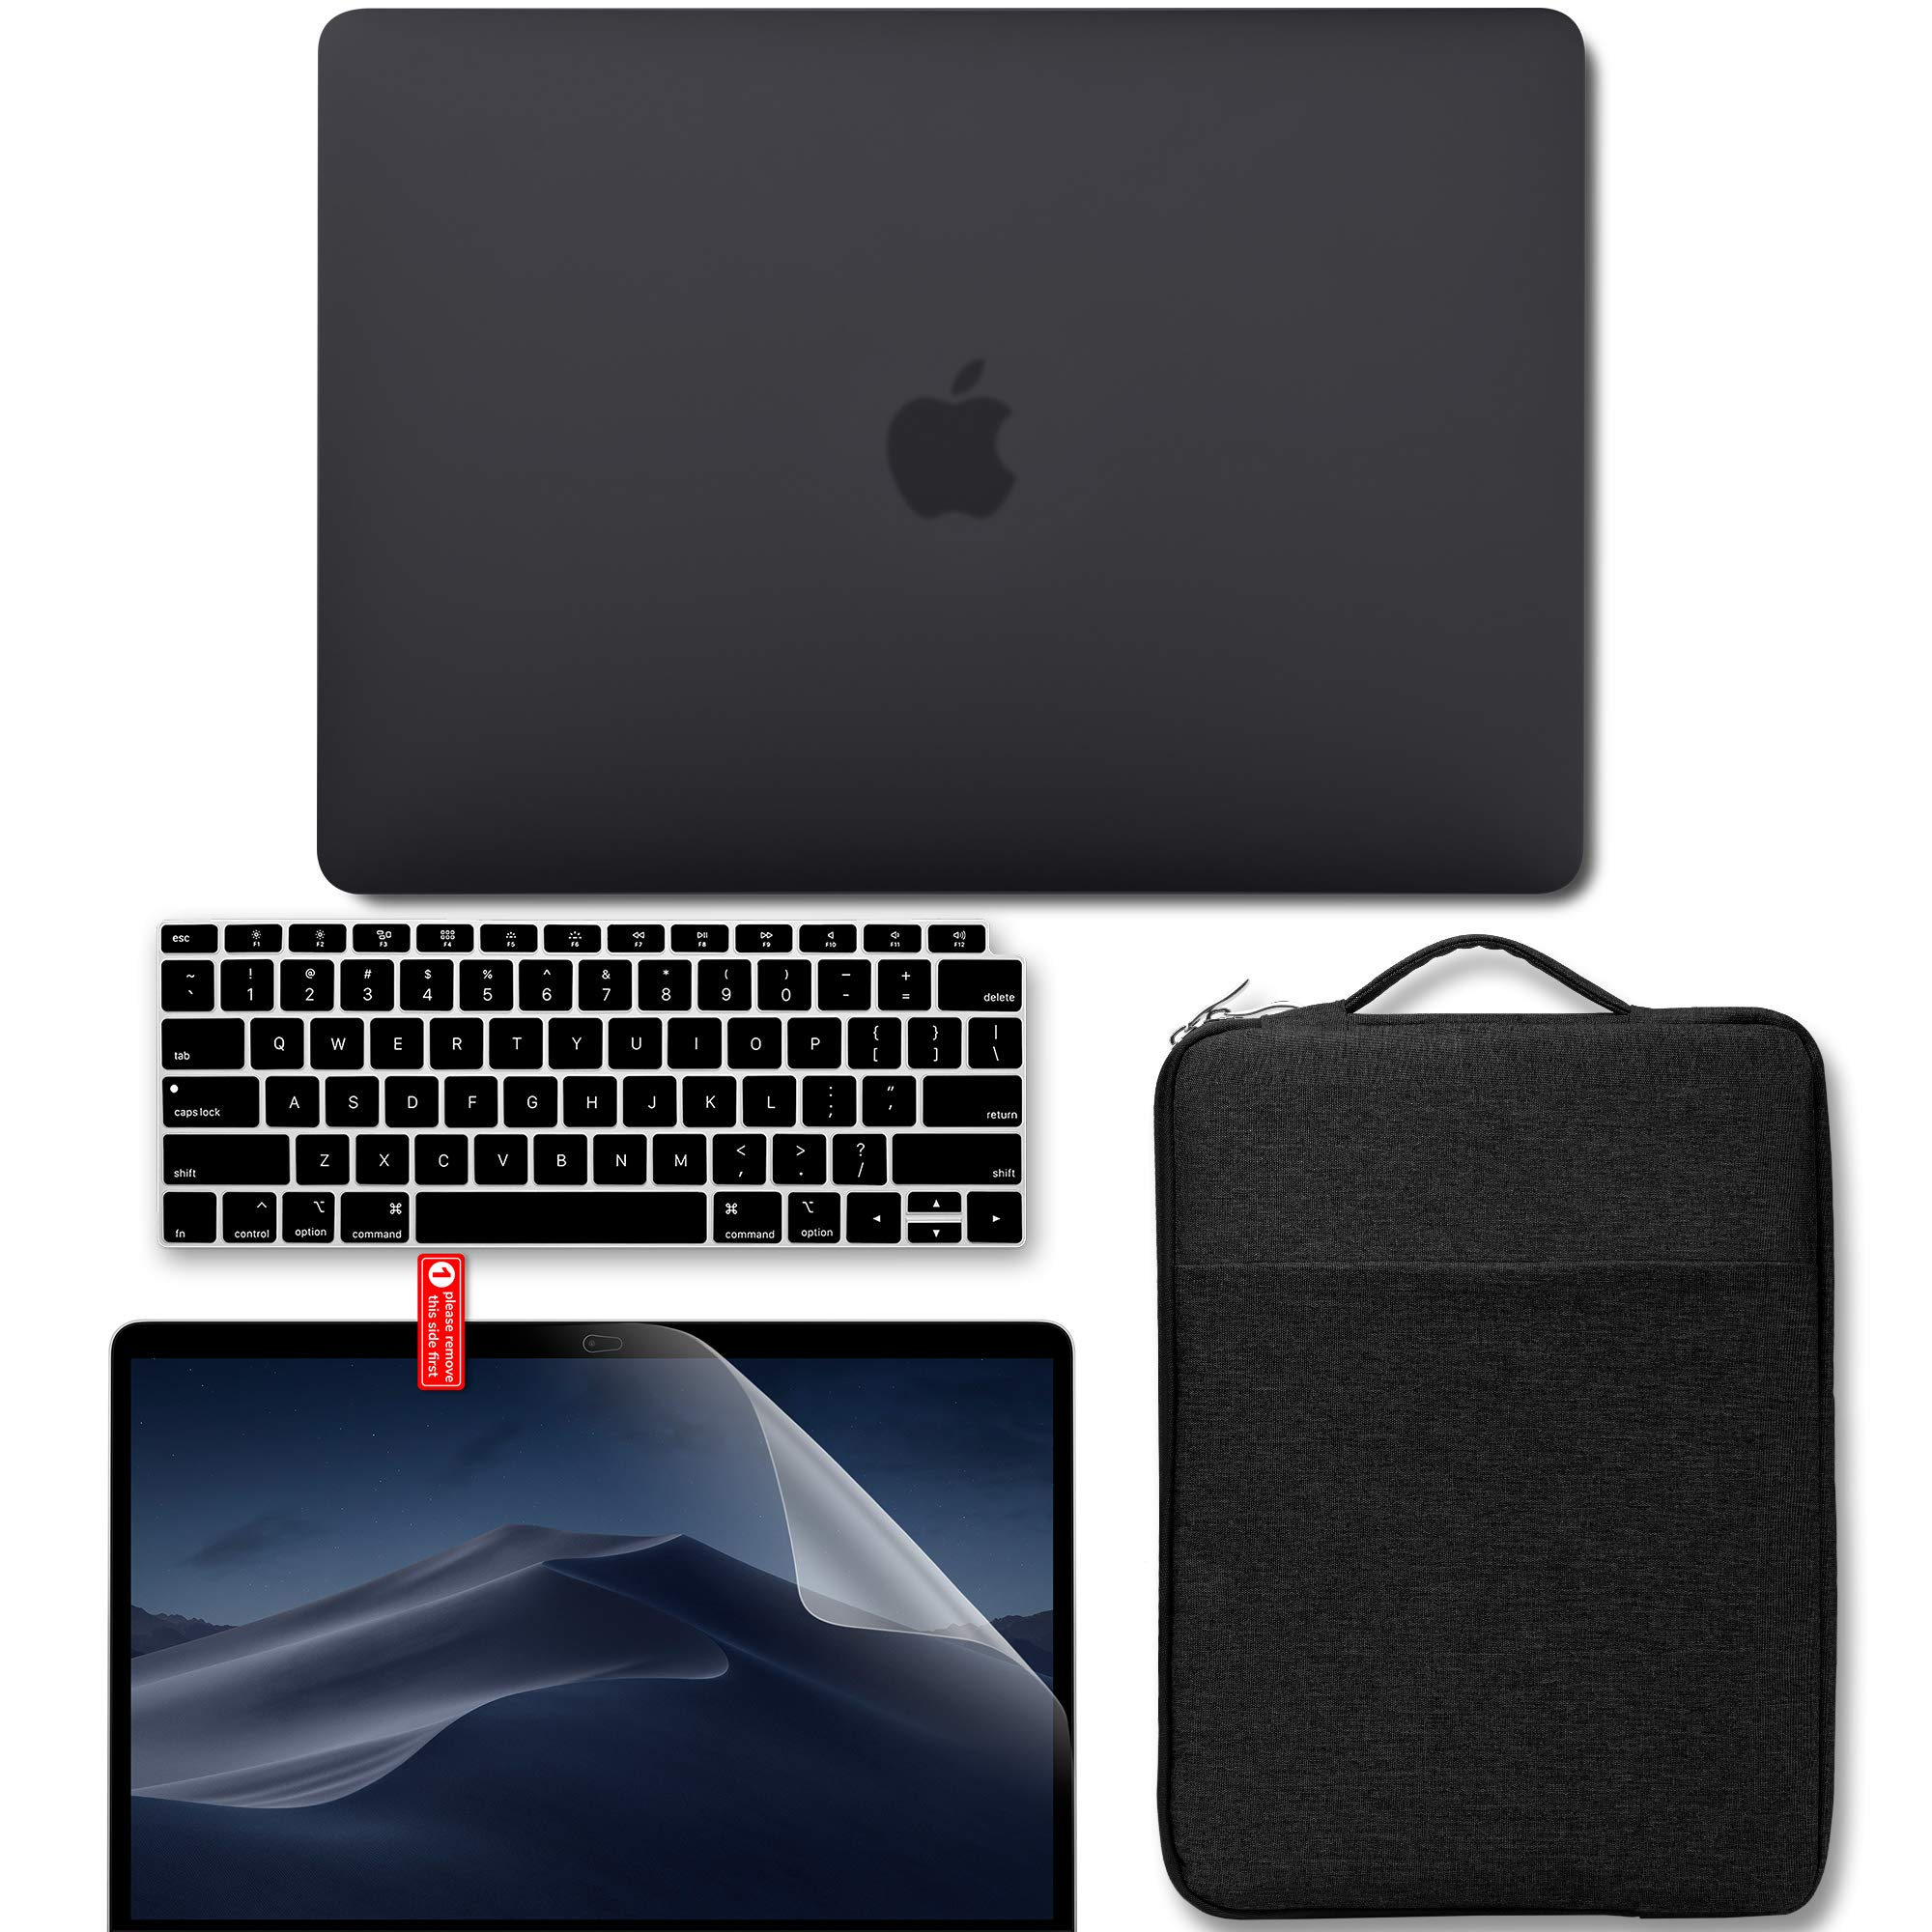 GMYLE New MacBook Air 13 Inch Case A1932 2018 Compatible Touch ID Retina Display 4 in 1 Bundle, Hard Shell, Carrying Laptop Sleeve, Screen Protector, Keyboard Cover Set - Black